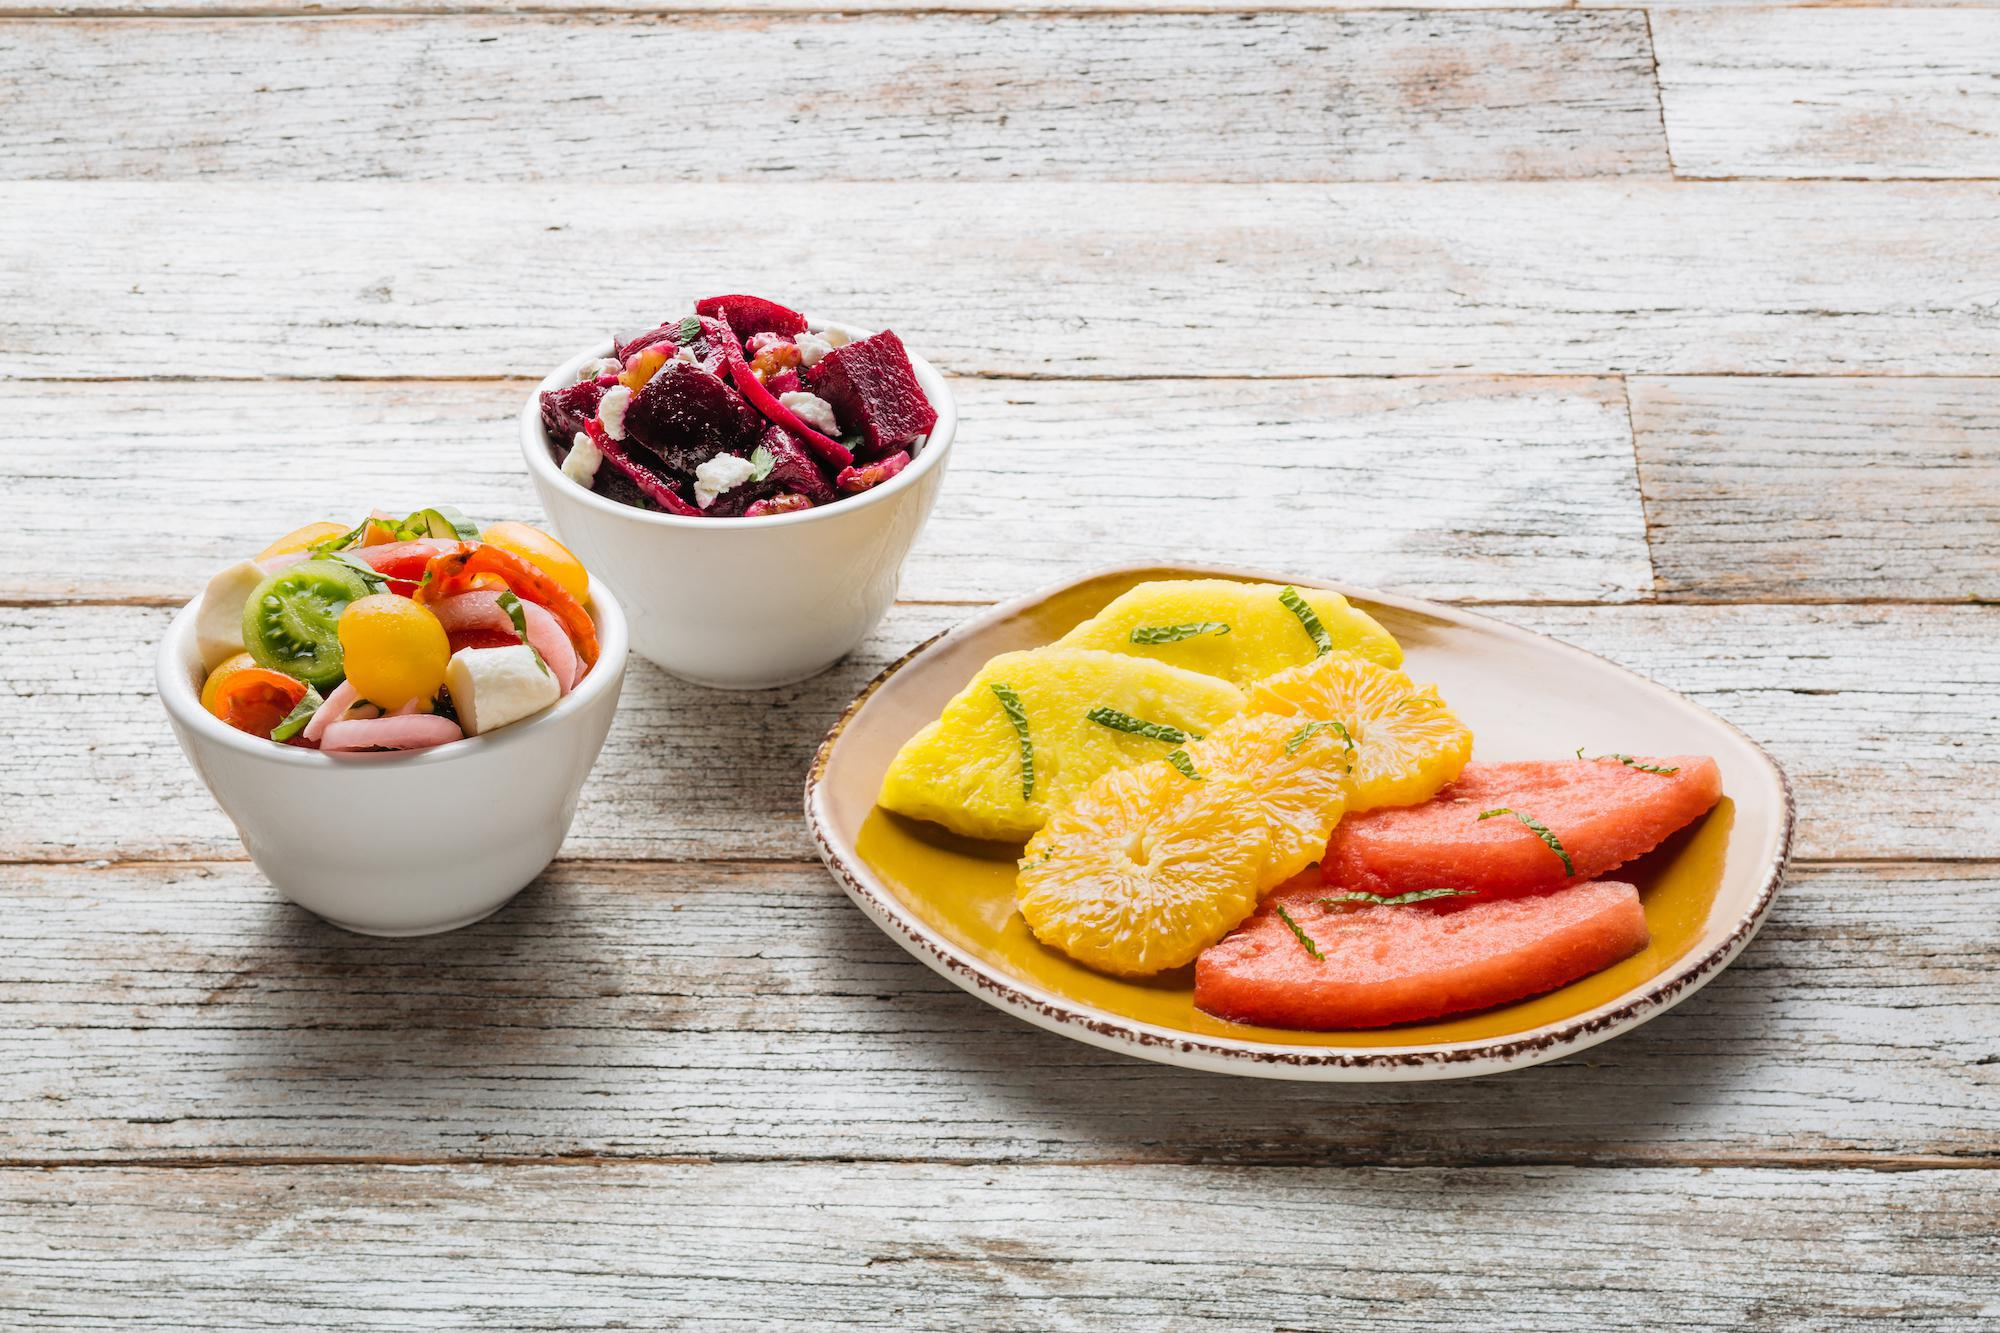 Chilled Sides